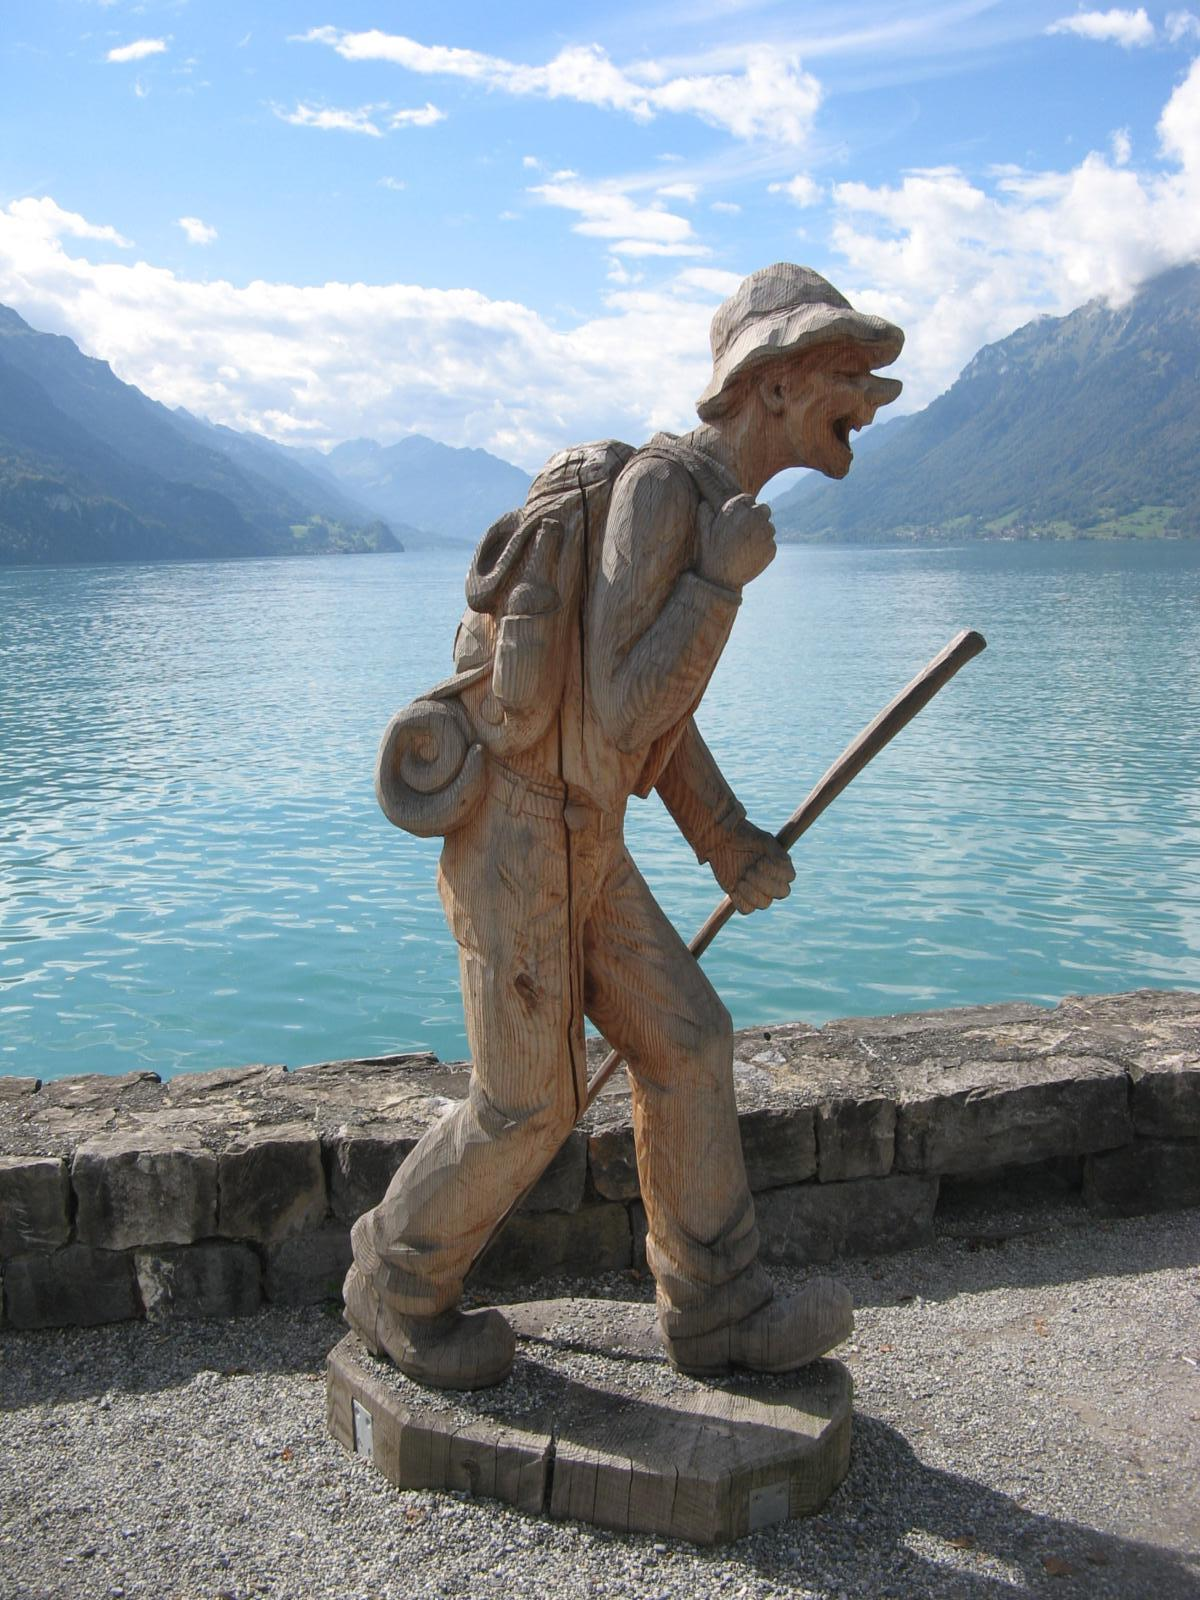 Фото 2 hour paved walk around Brienz